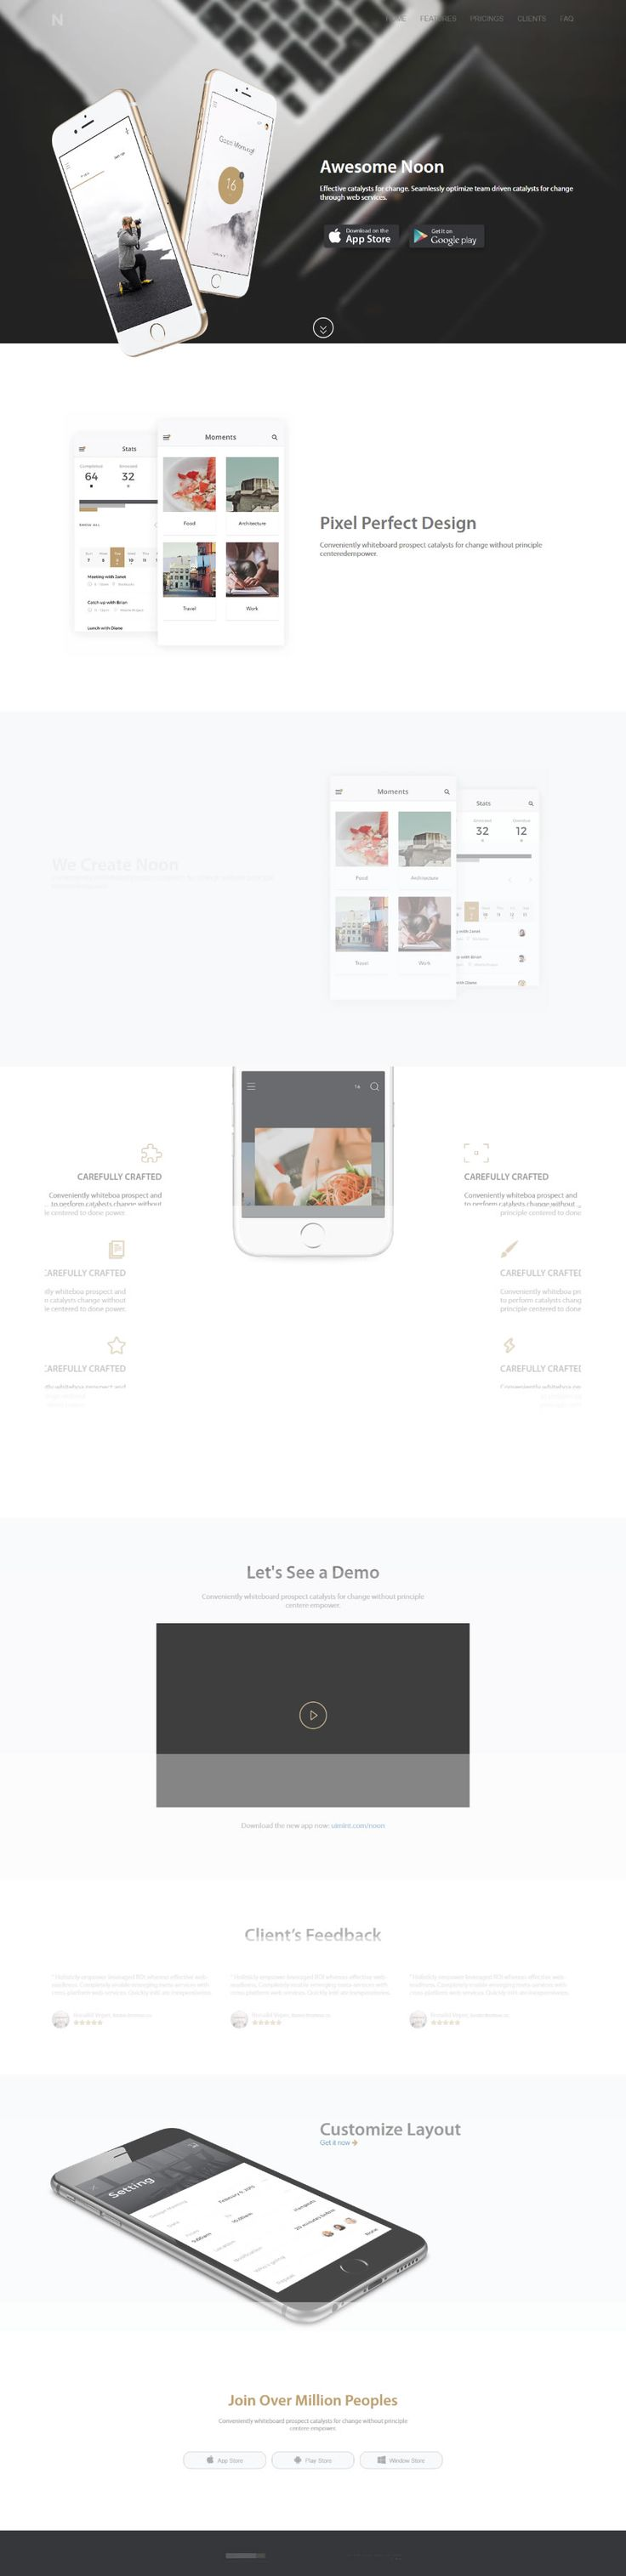 We have created Free Html UI Kit app Website.You can download the HTML for your app landing website !       #Free #html #website #template #landing #responsive #css #css3 #html5 #app #mobile